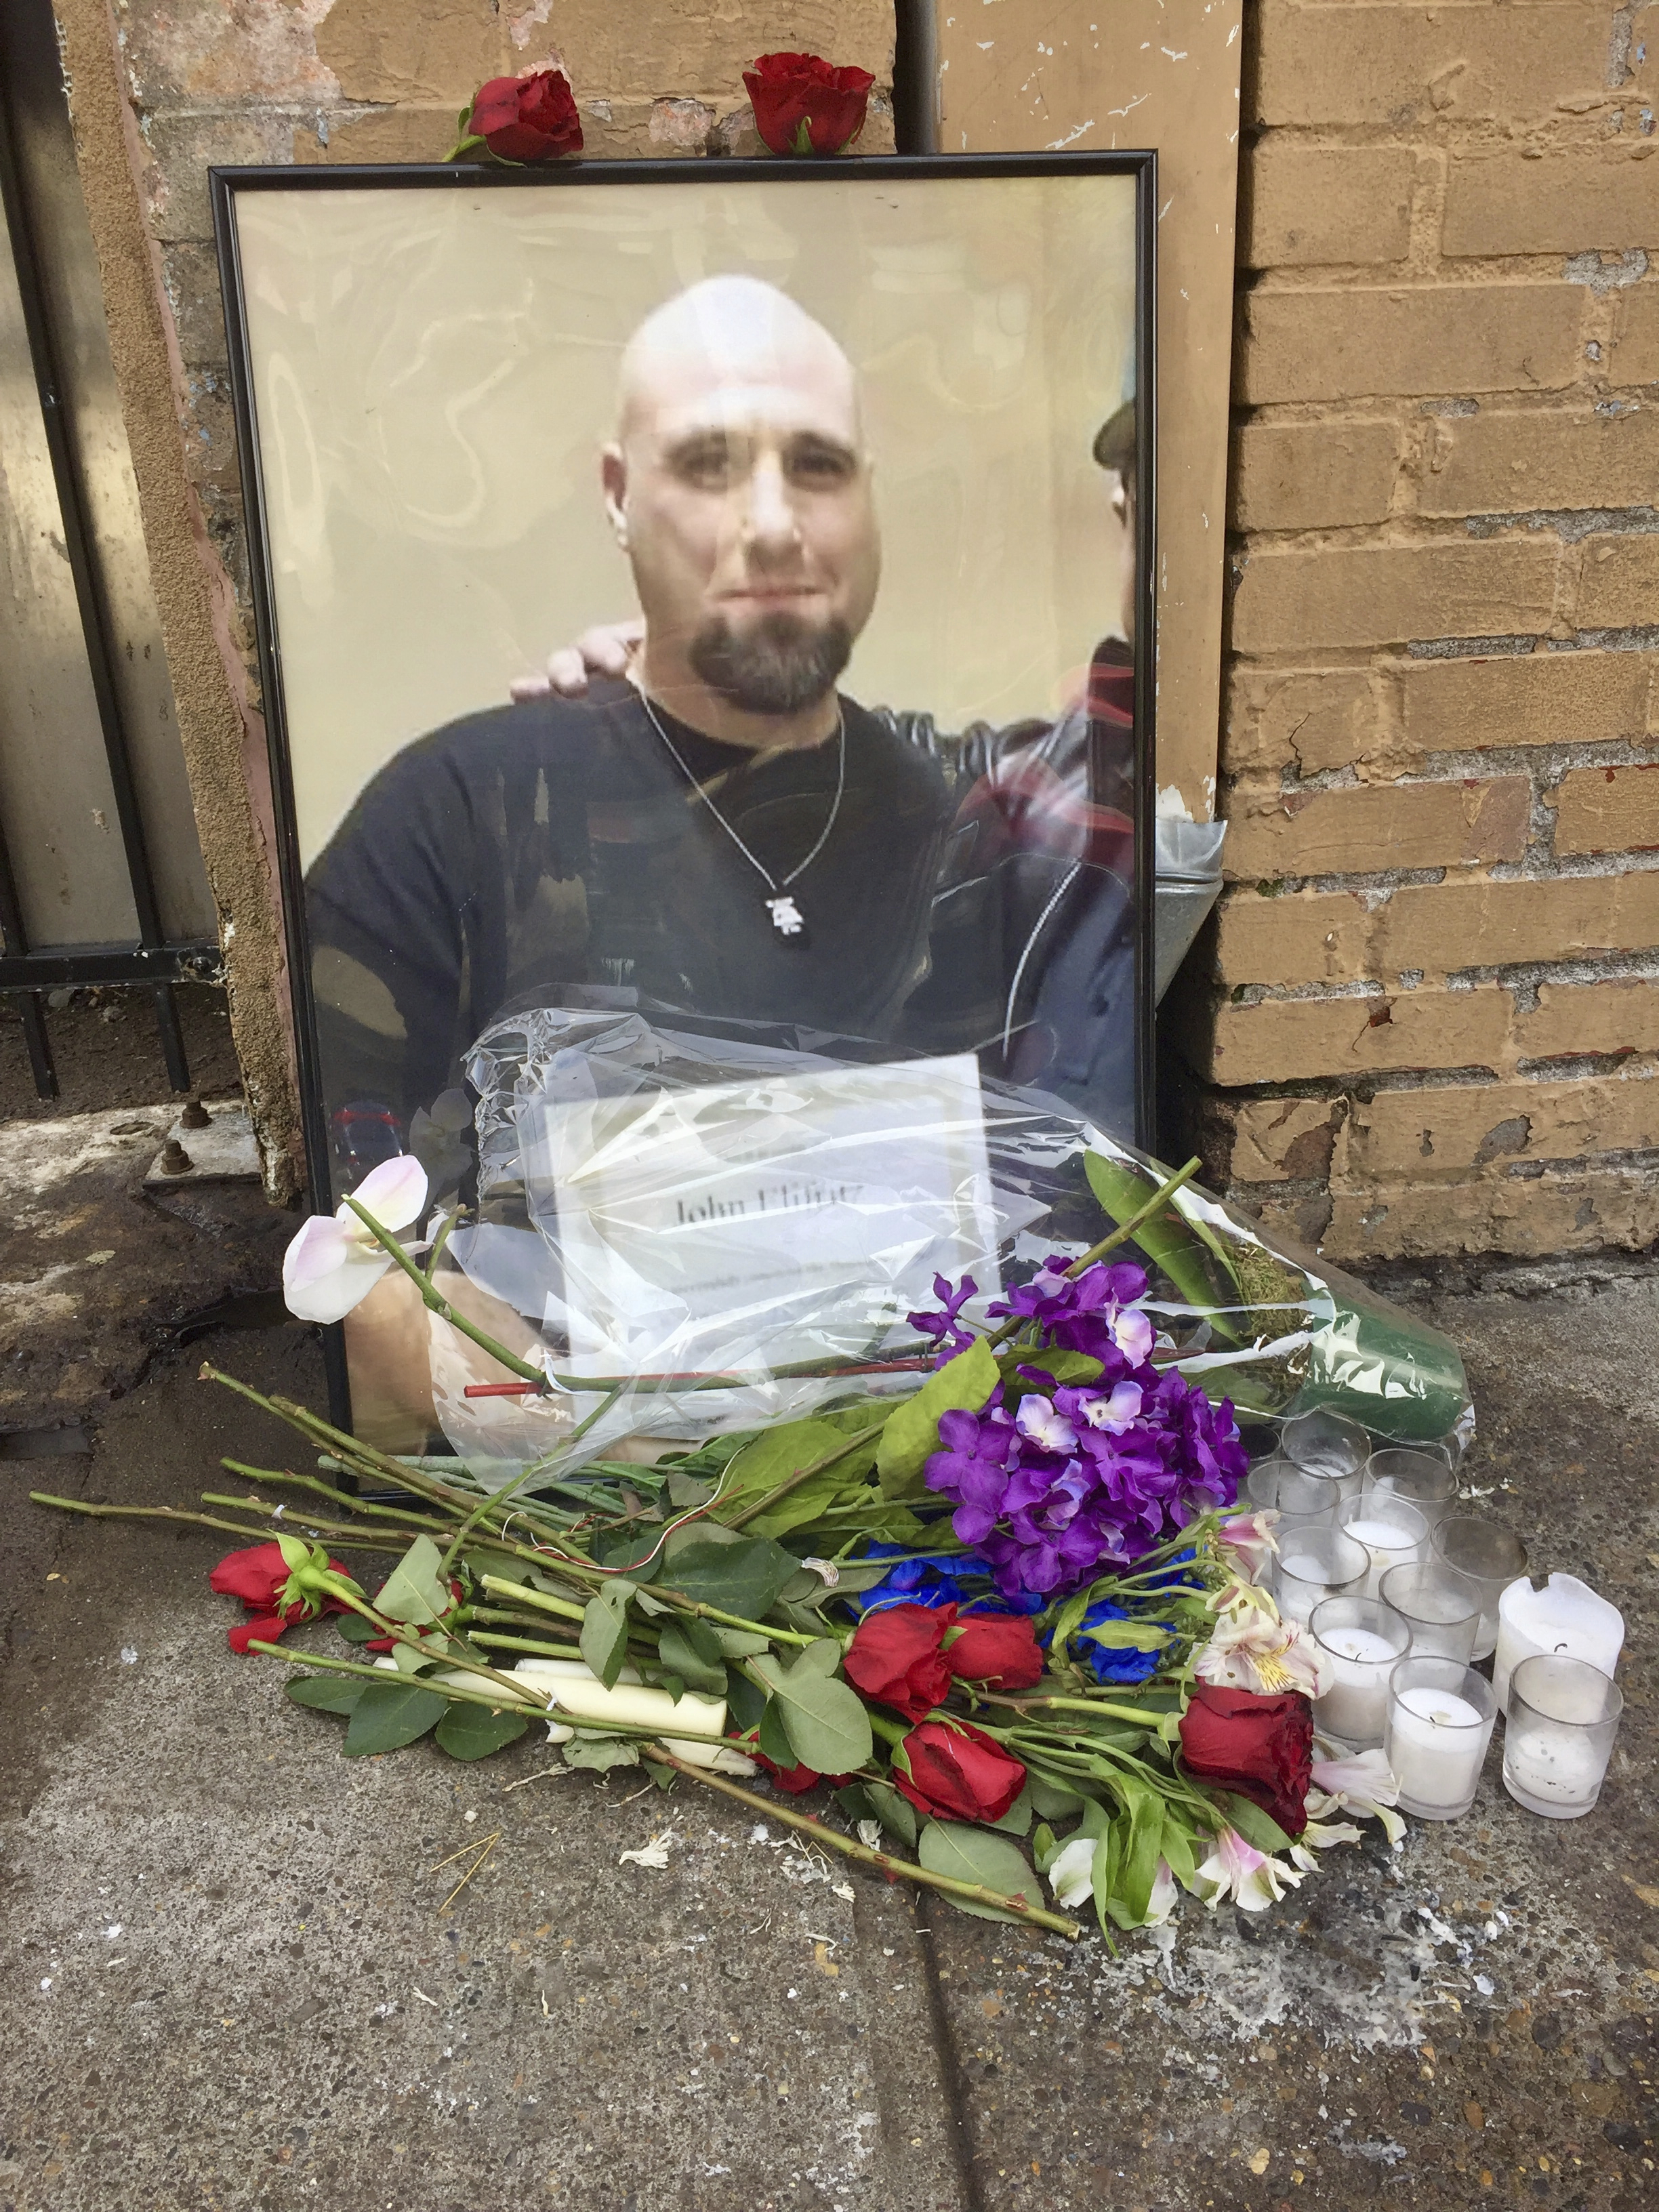 Questions Remain After Deadly Shooting By Portland Police In Homeless Shelter